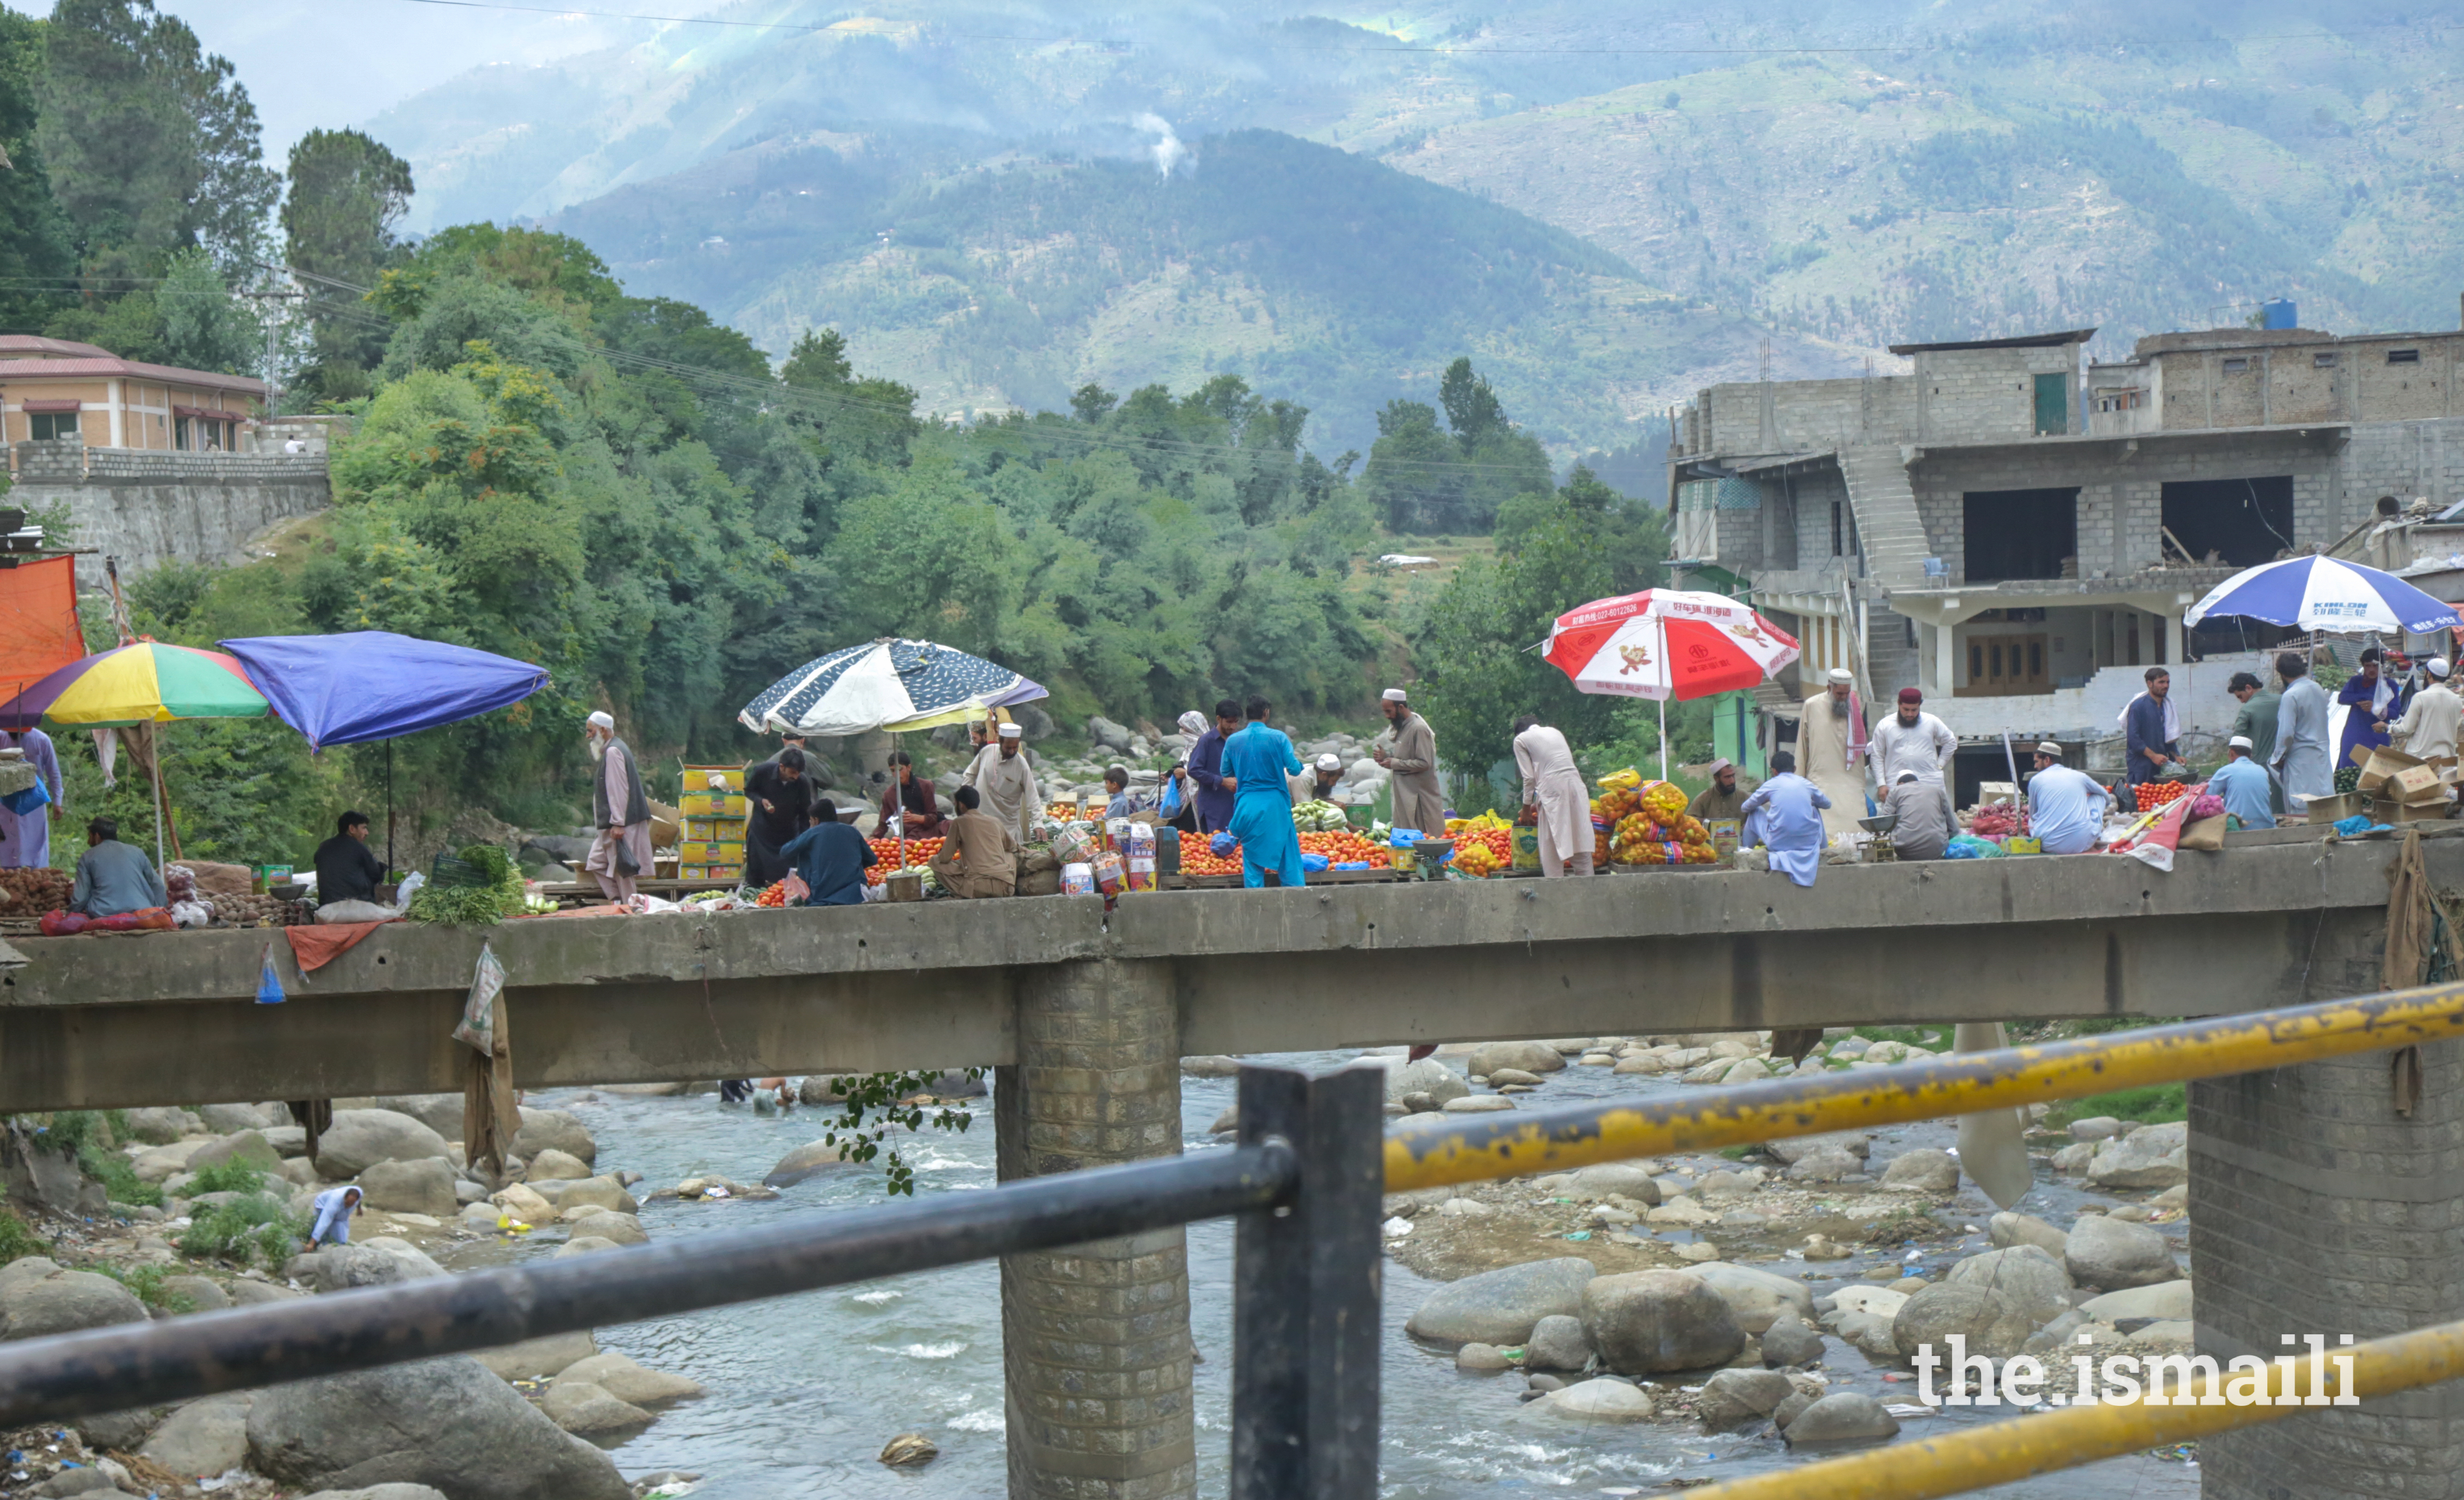 Locals shopping at the street fruit market in Chilas, a small town located in Gilgit-Baltistan on the Indus river.